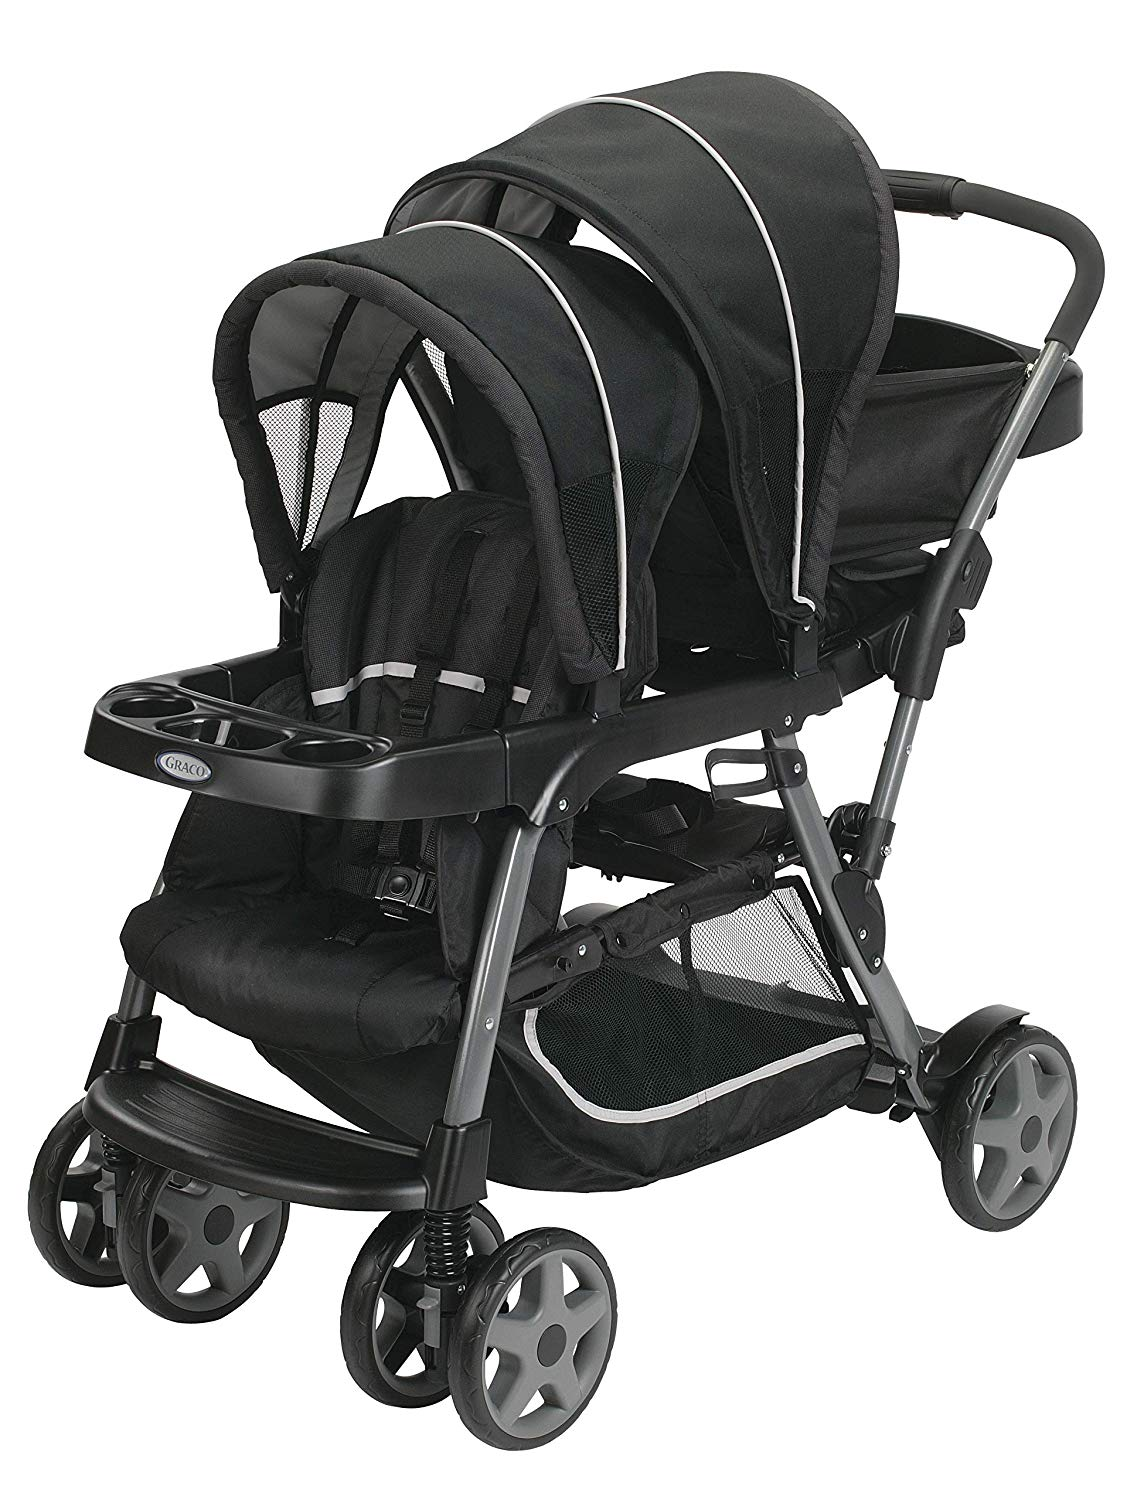 Graco Ready2Grow Click Connect Stand and Ride Stroller